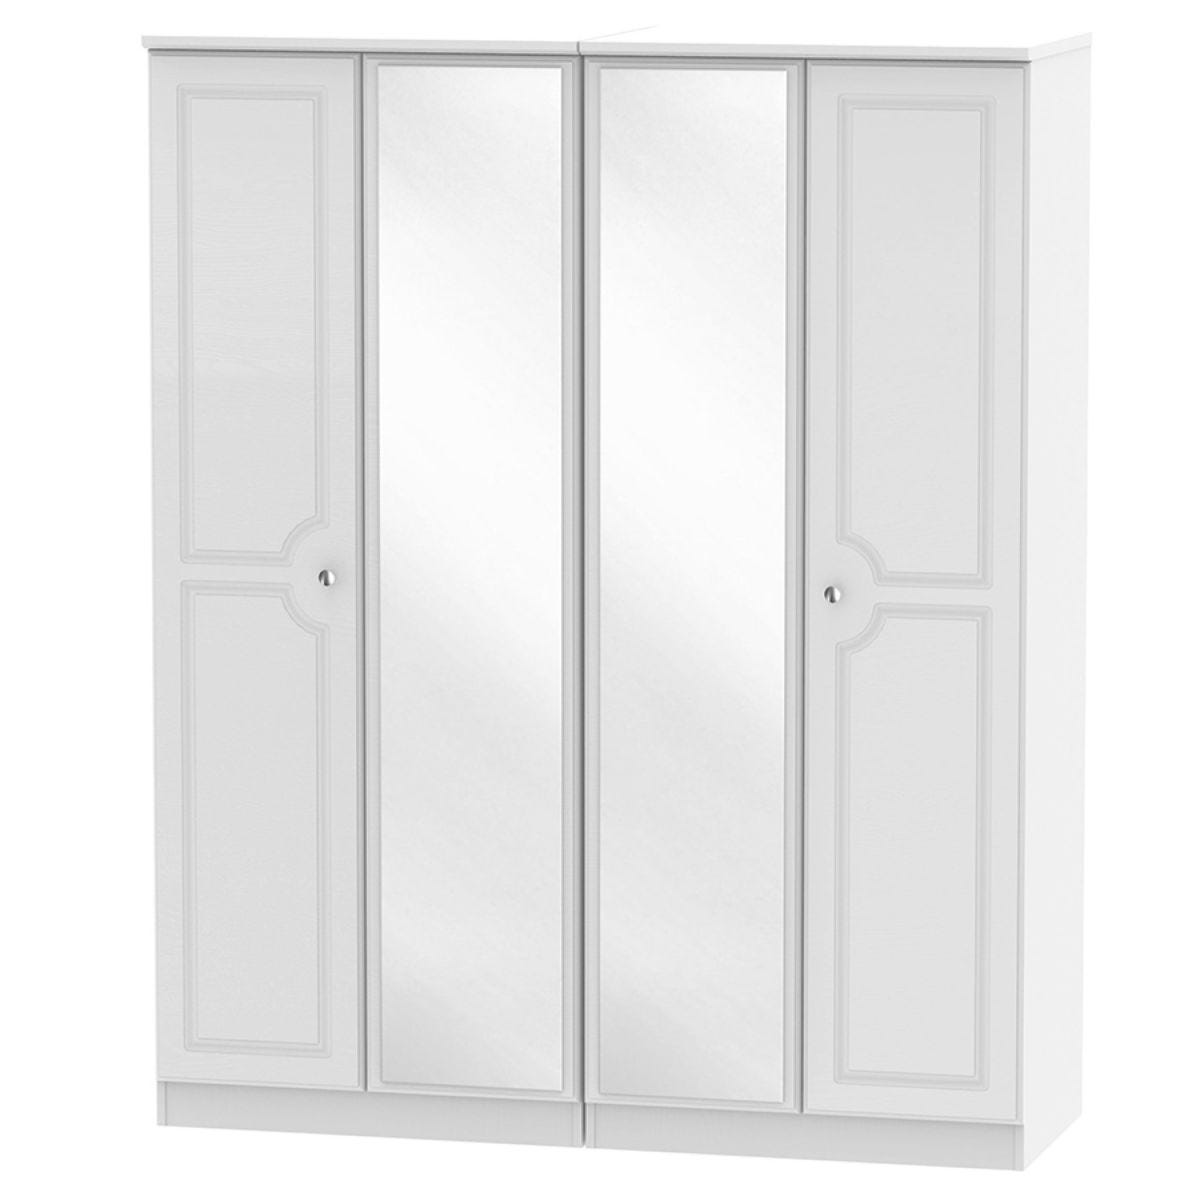 Montego 4-Door Mirrored Wardrobe - White